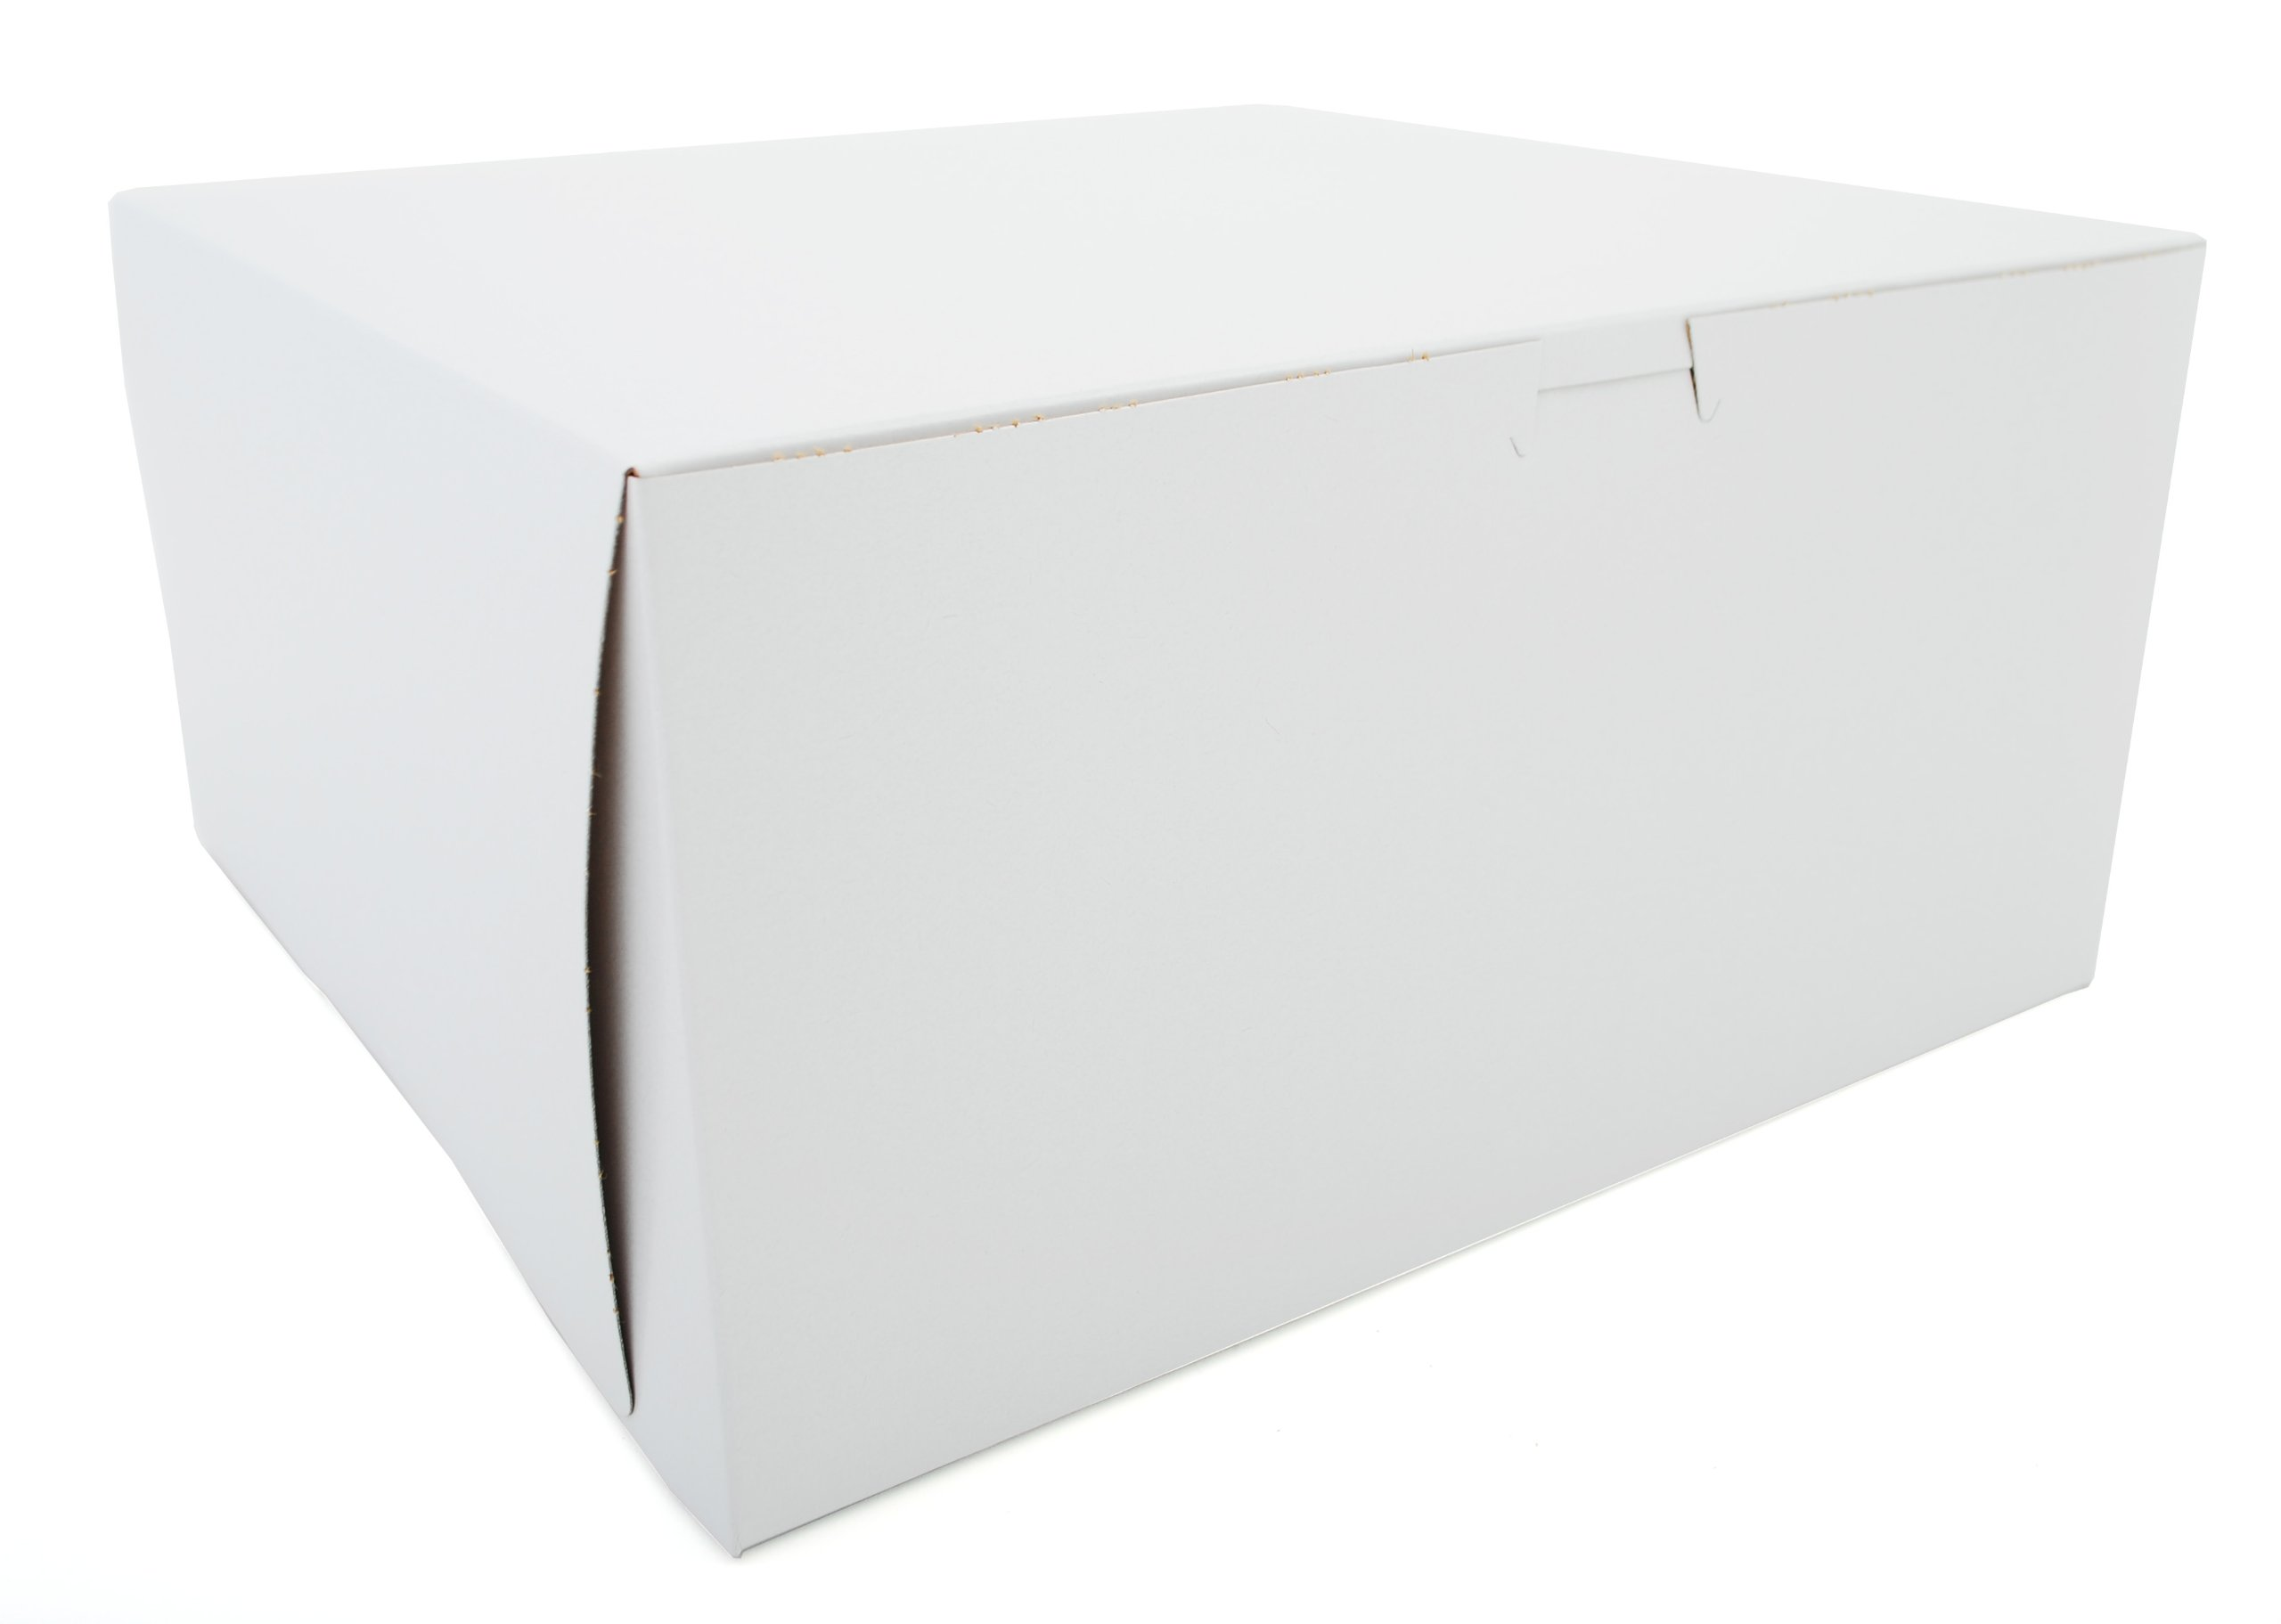 Southern Champion Tray 0989 Premium Clay-Coated Kraft Paperboard White Non-Window Lock Corner Bakery Box, 12'' Length x 12'' Width x 6'' Height (Case of 50)